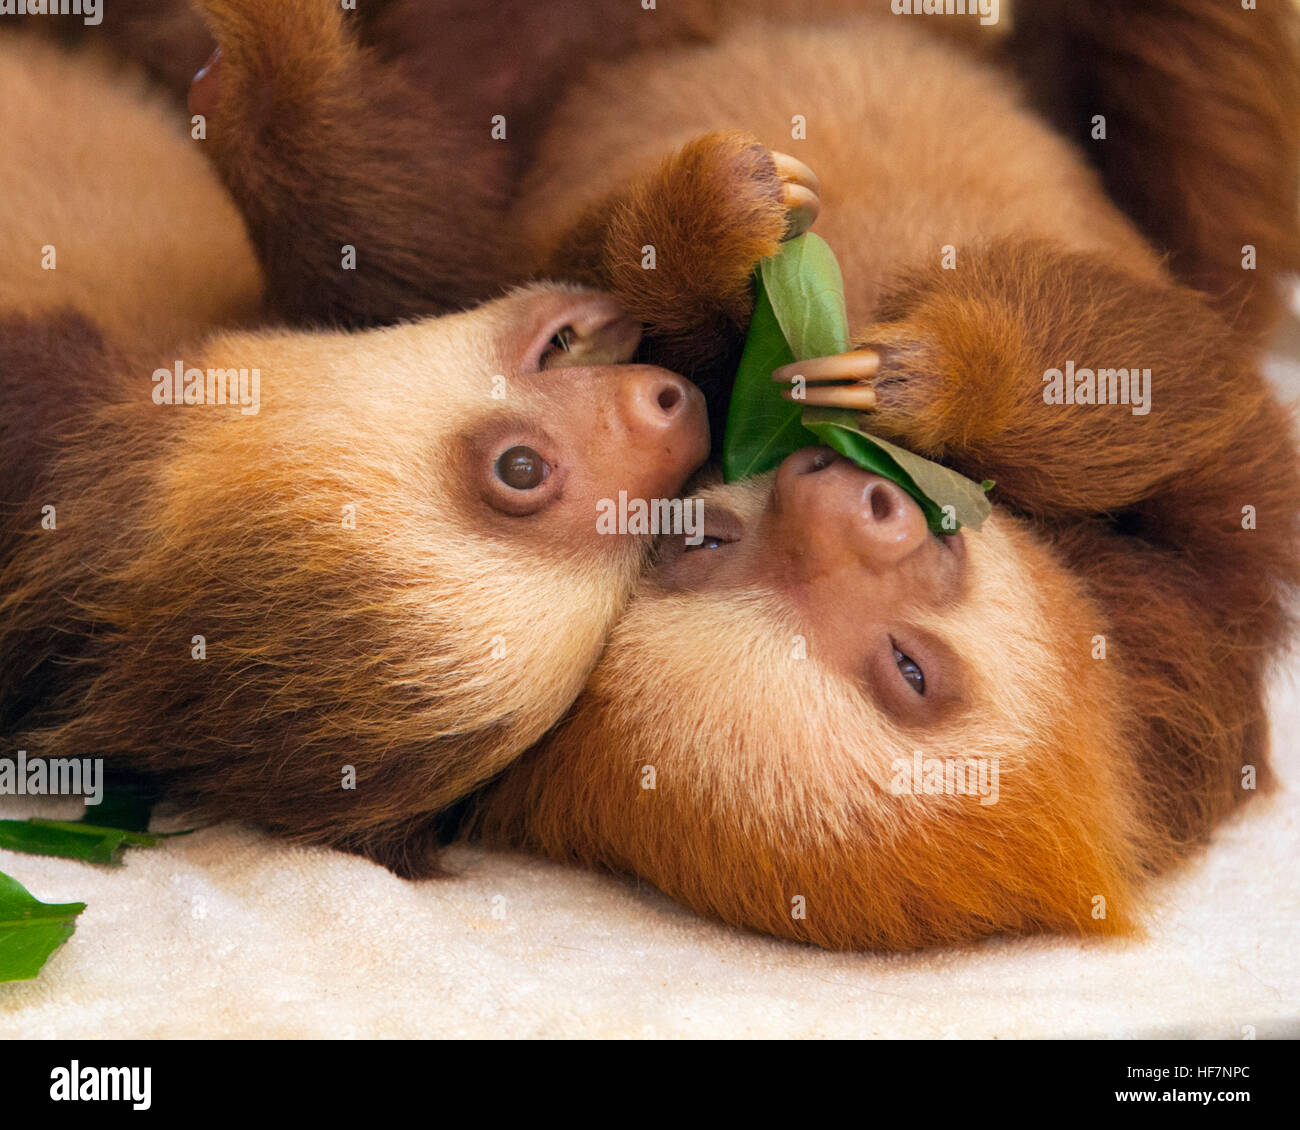 Baby orphaned Hoffmann's Two-toed Sloths (Choloepus hoffmanni) feeding on leaves at the Sloth Sanctuary - Stock Image